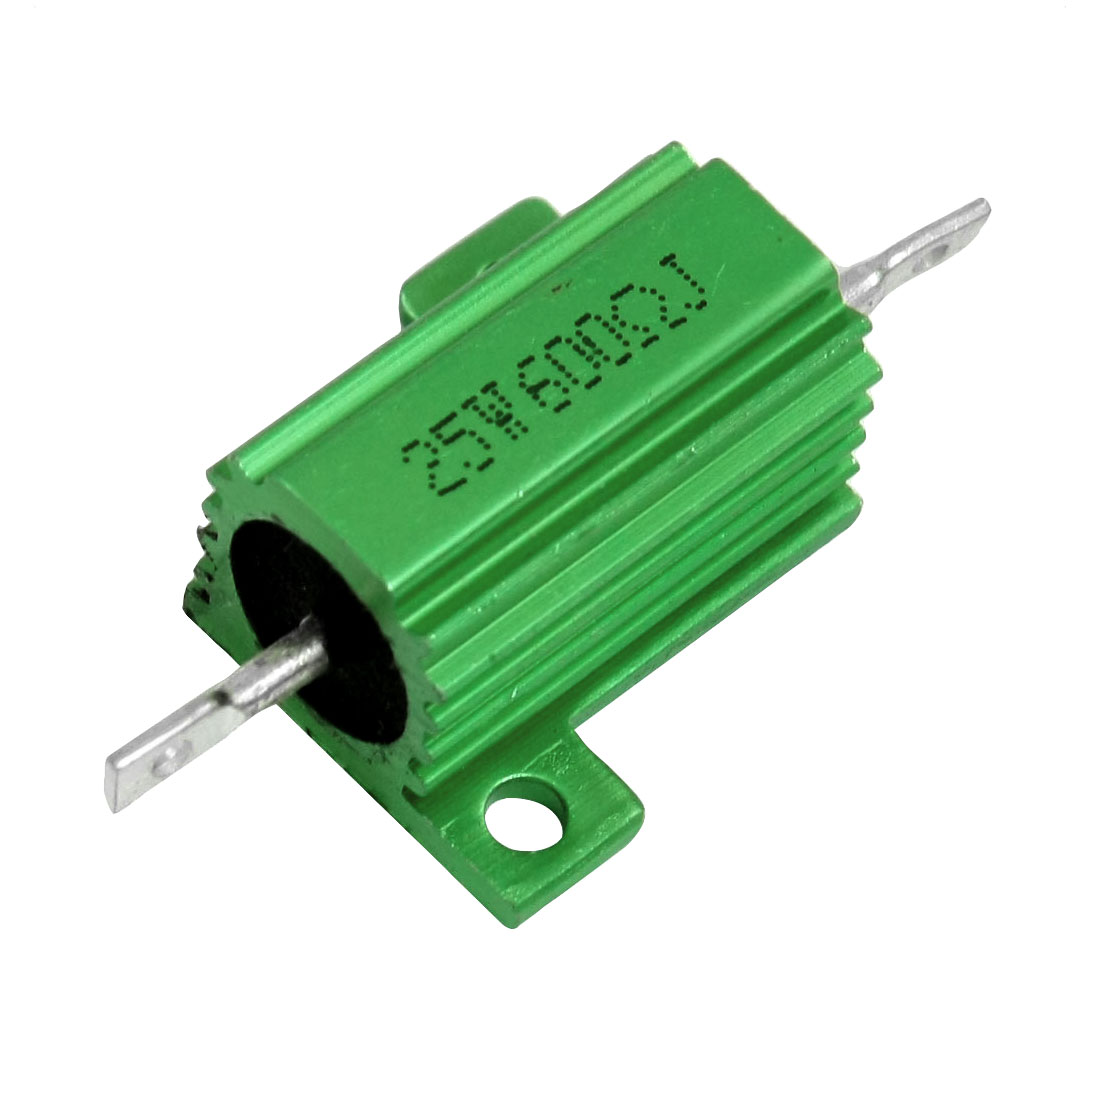 5% 600 Ohm 25 Watt Green Aluminum Housed Clad Wirewound Resistor